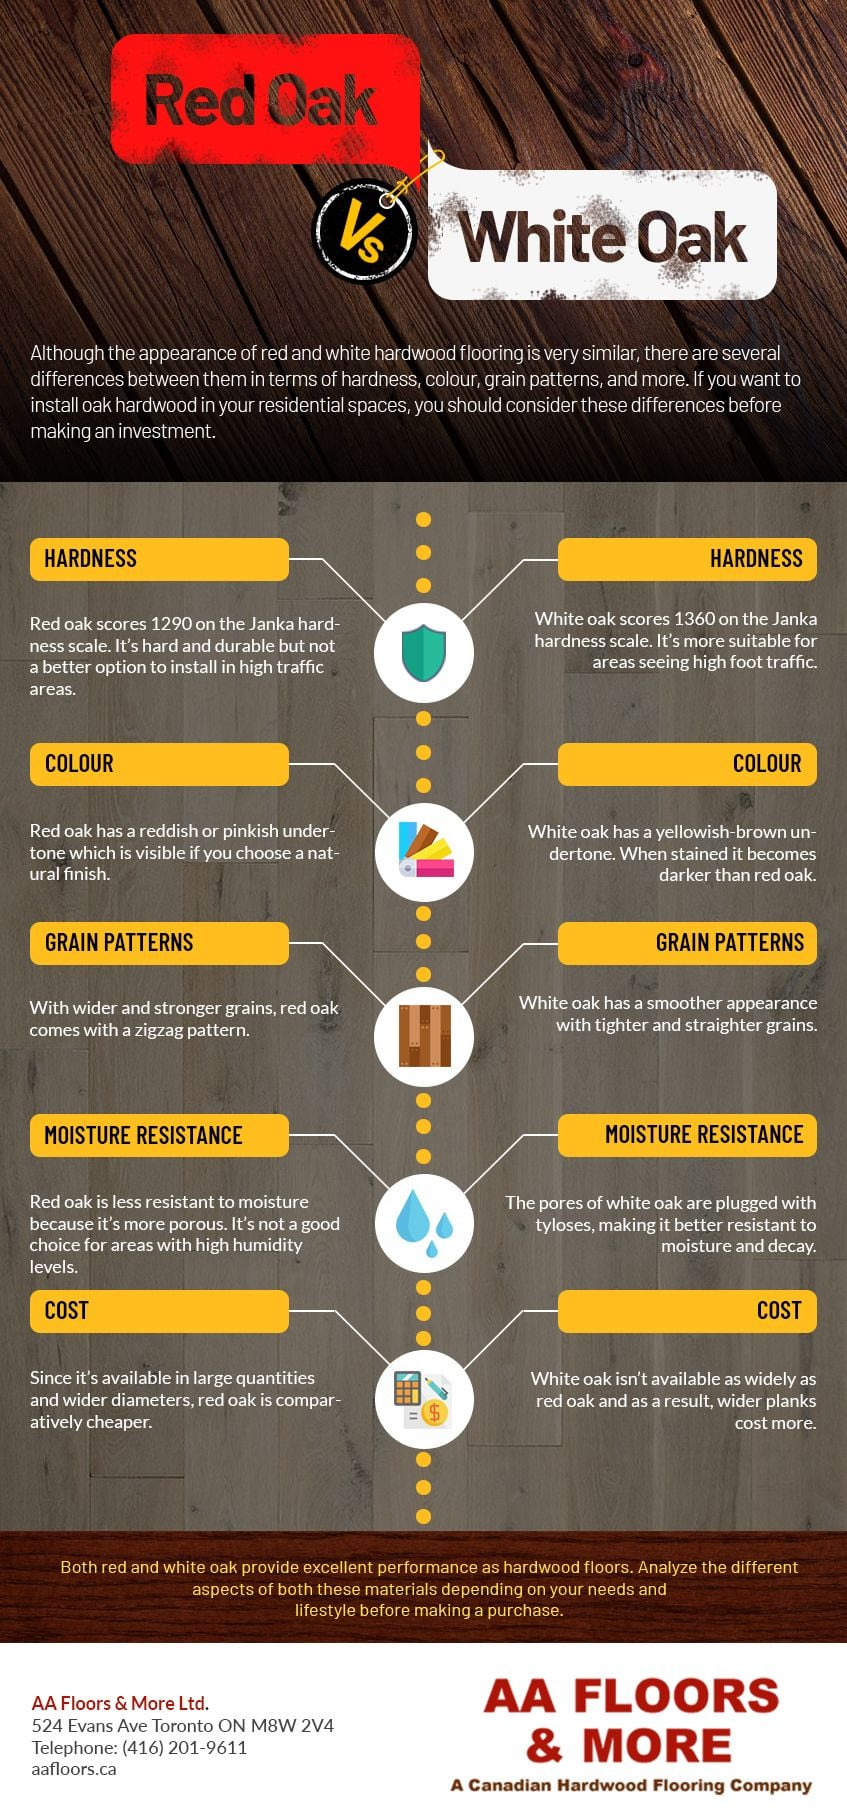 Red Oak vs White Oak – [Infographic]